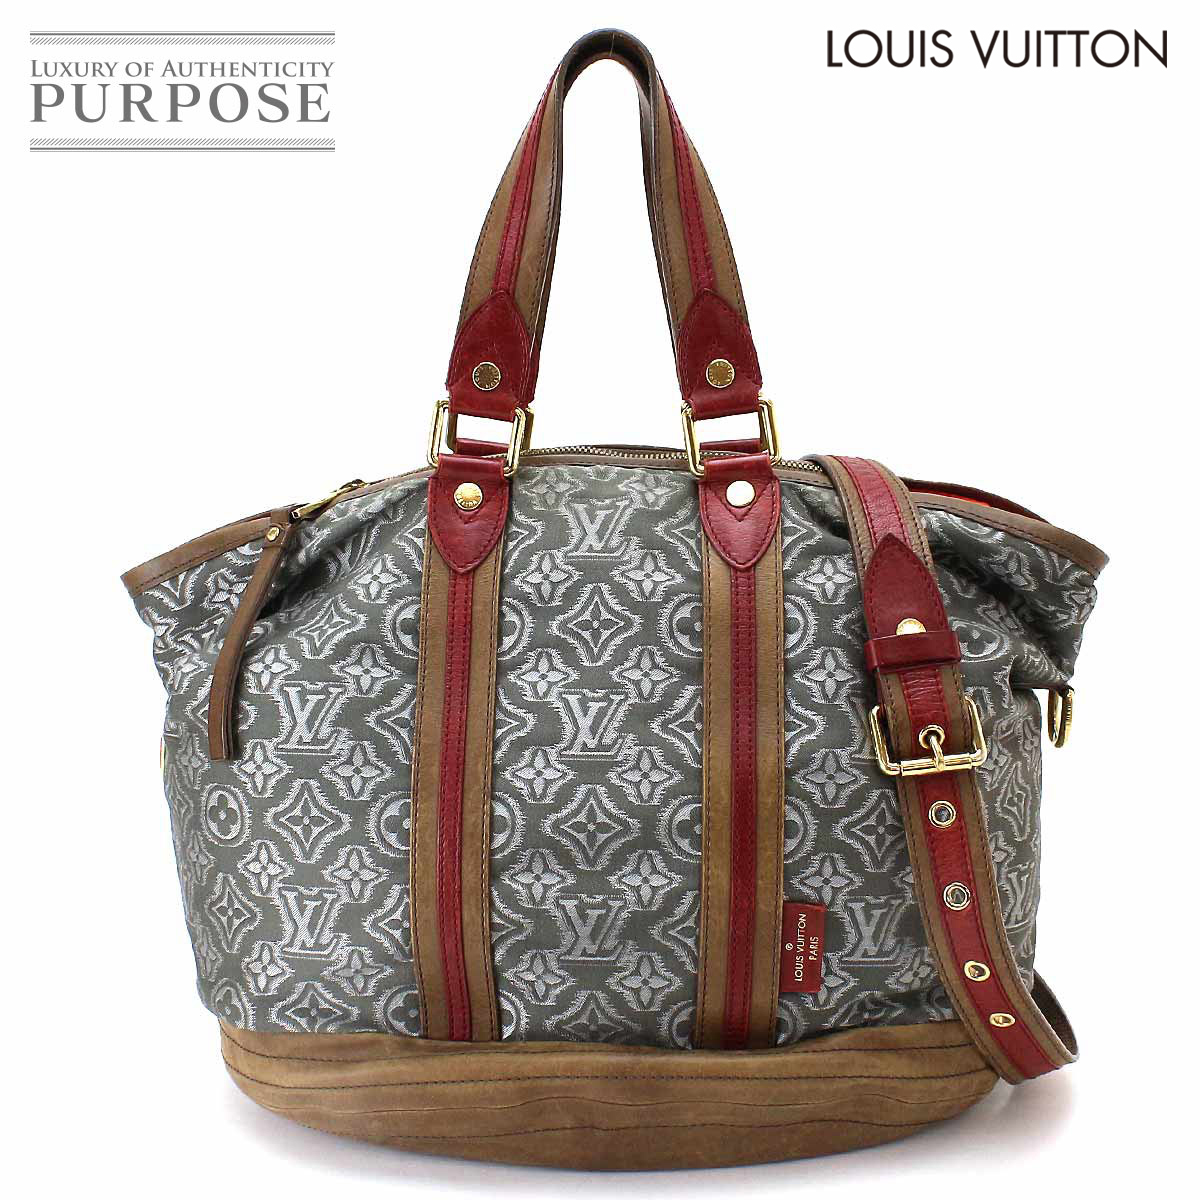 8591868ccd56 Purpose Inc  Louis Vuitton LOUIS VUITTON アヴィエーター 2way tote bag canvas  leather gray brown red M40385